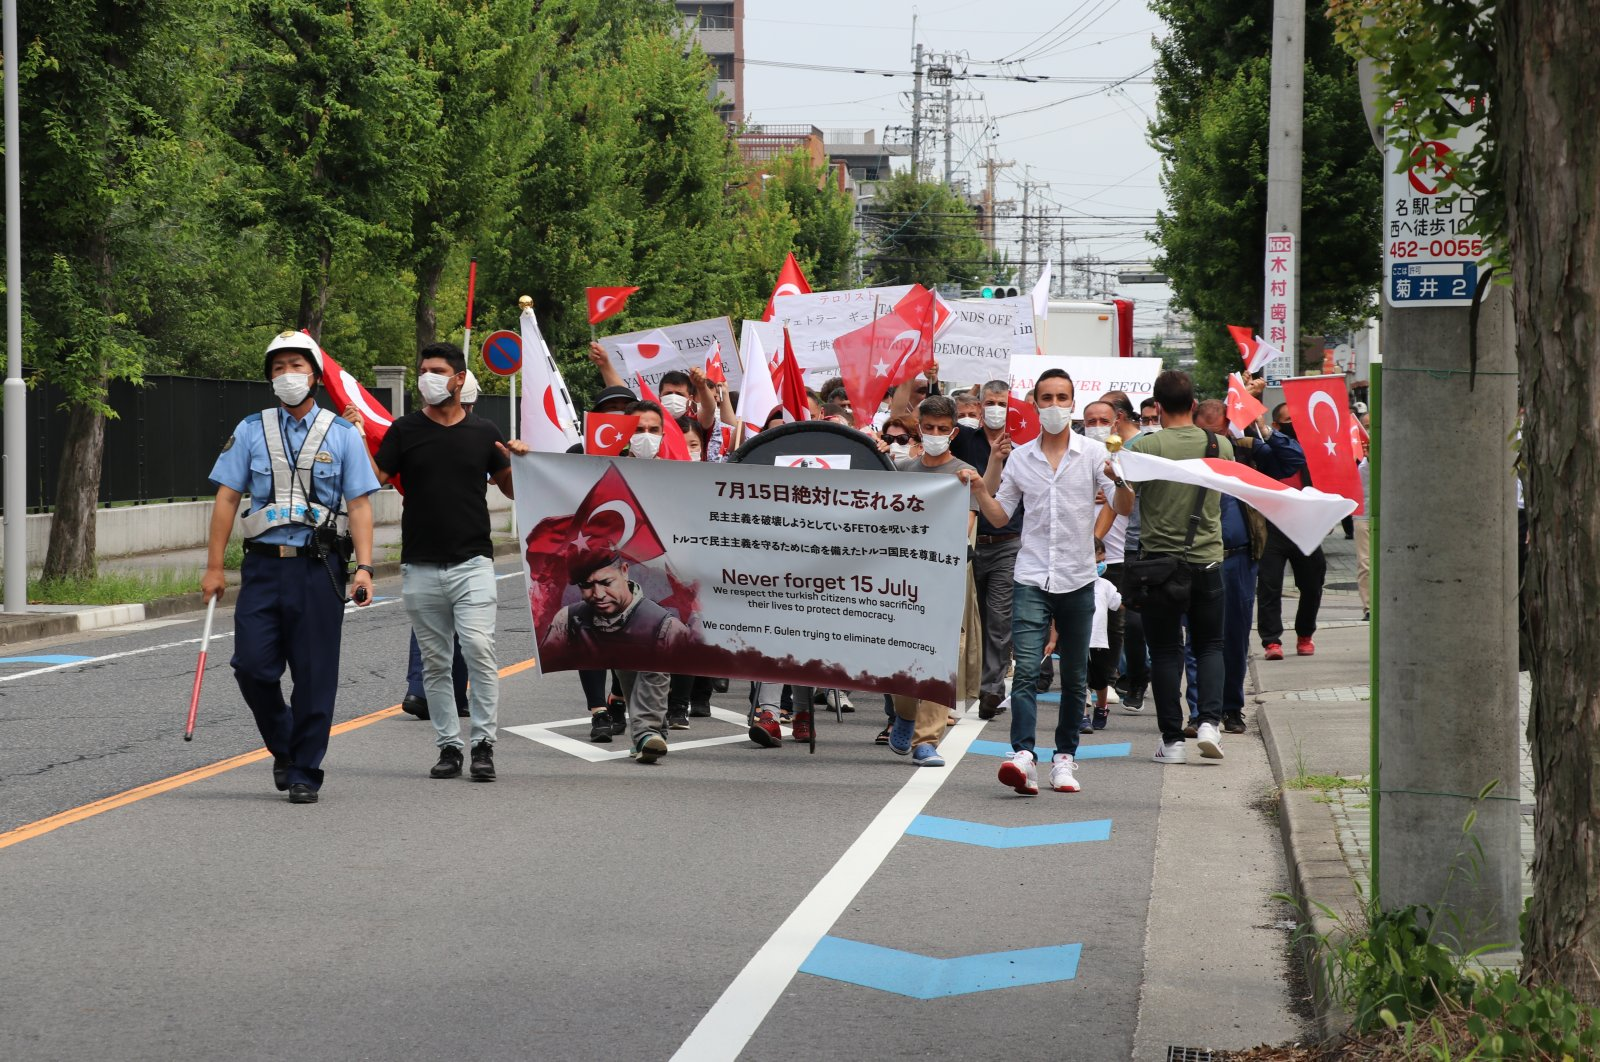 People demonstrate in front of the Enishi International School (EIS), which is linked to the Gülenist Terror Group (FETÖ), in central Nagoya, Japan, Aug. 4, 2020. (AA Photo)